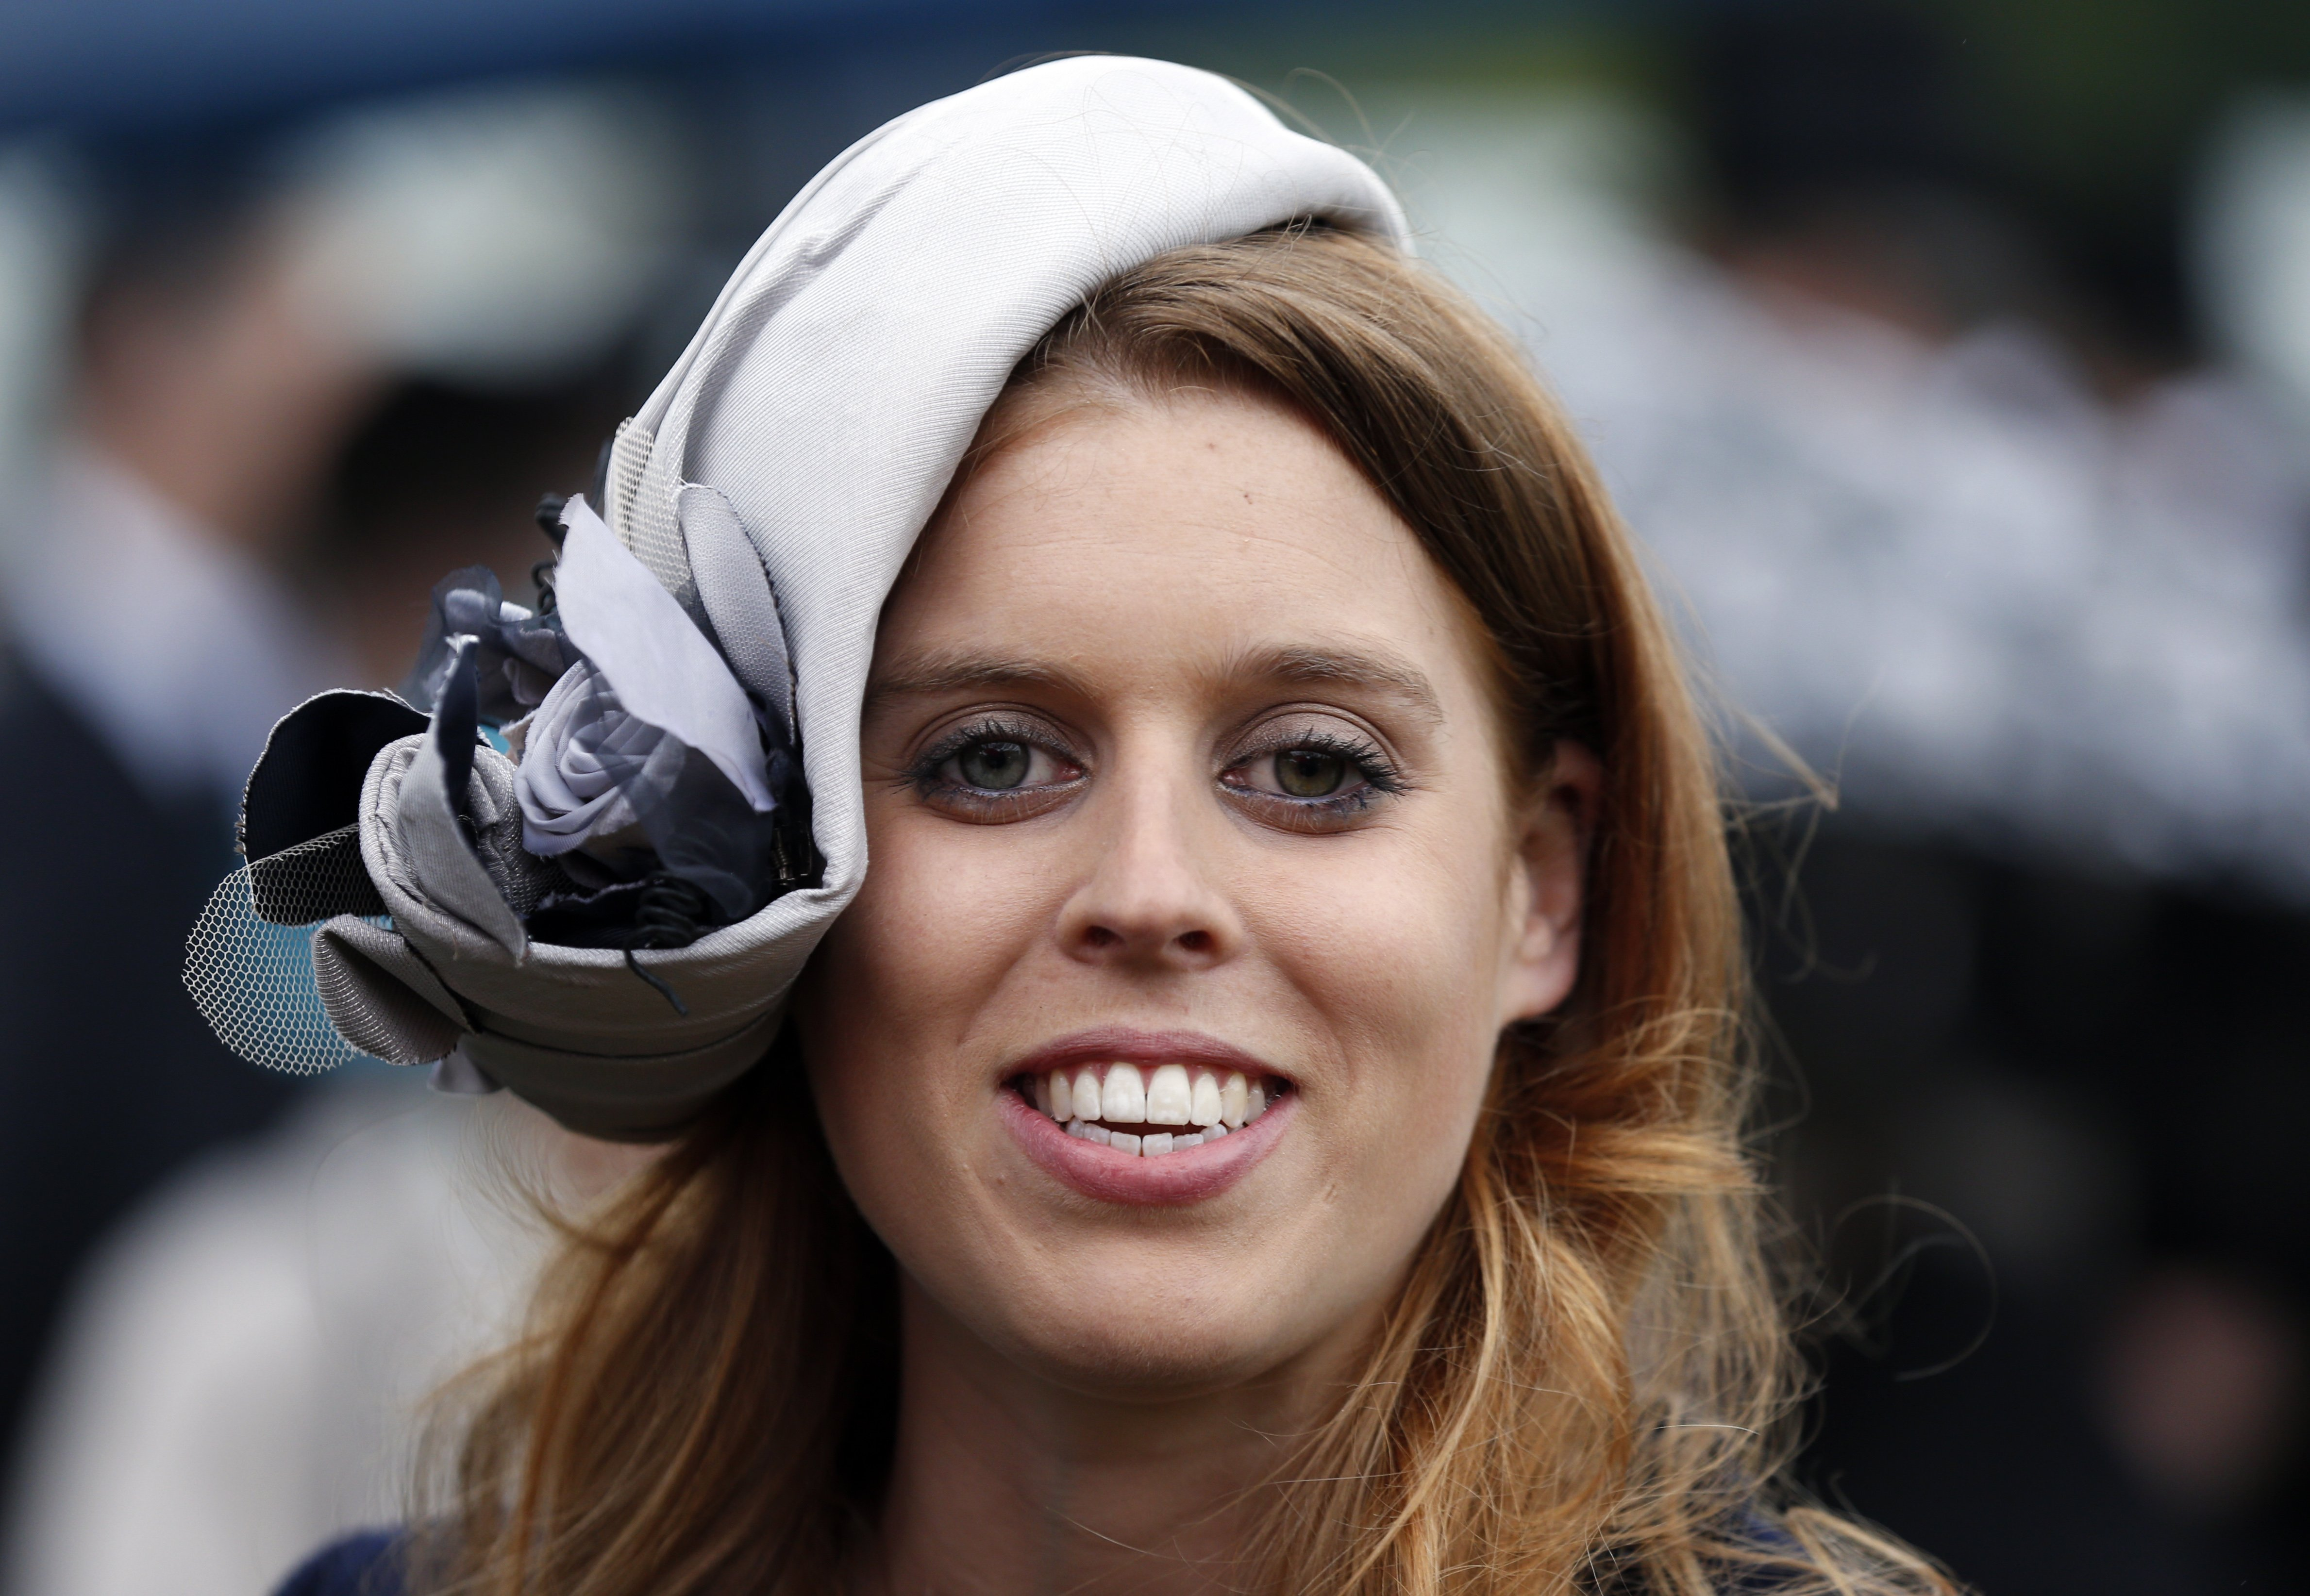 Princess Beatrice smiles during a garden party held at Buckingham Palace, on May 30, 2013 in London, England. | Source: Getty Images